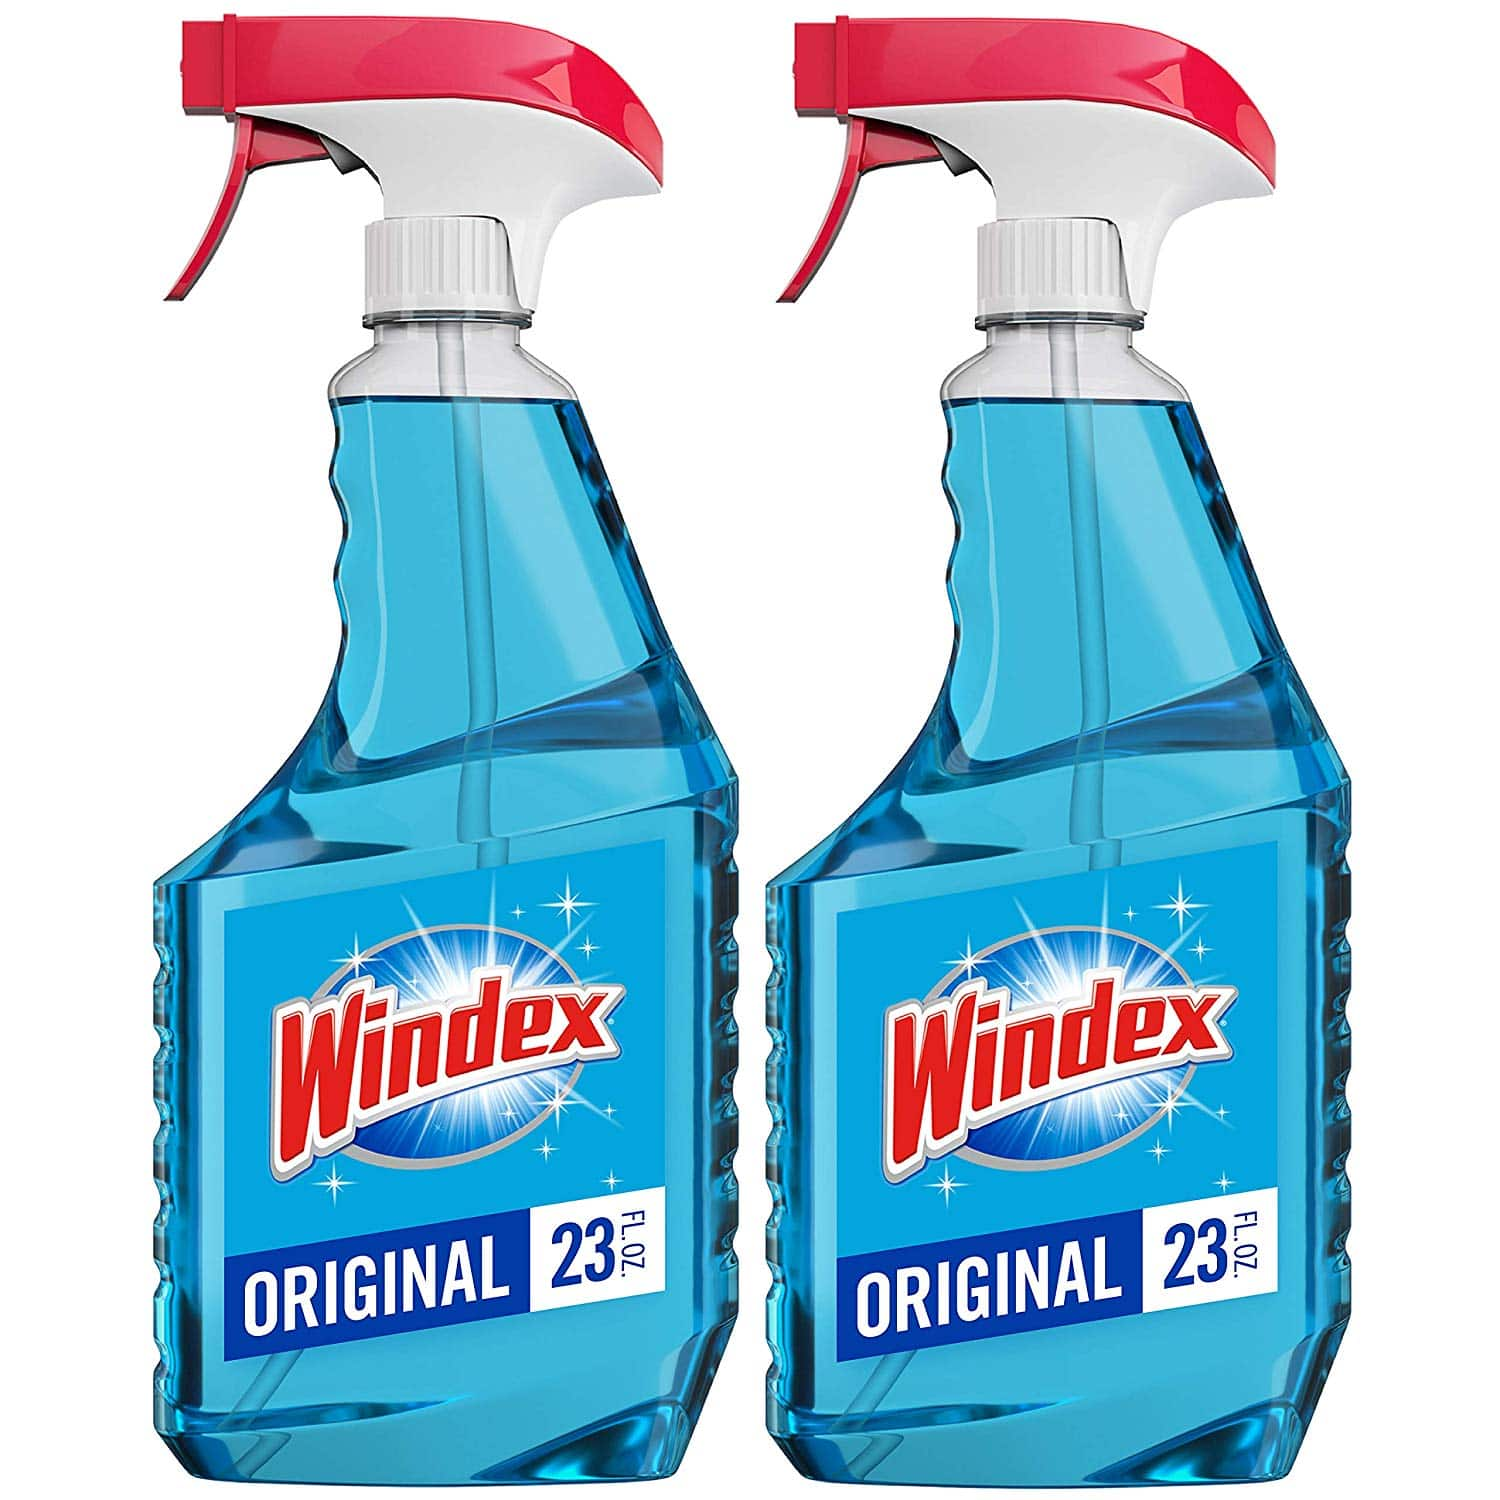 2-Pack Windex Glass Cleaner Trigger Bottle (Original Blue) 23 fl oz for $4.26 w/ S&S